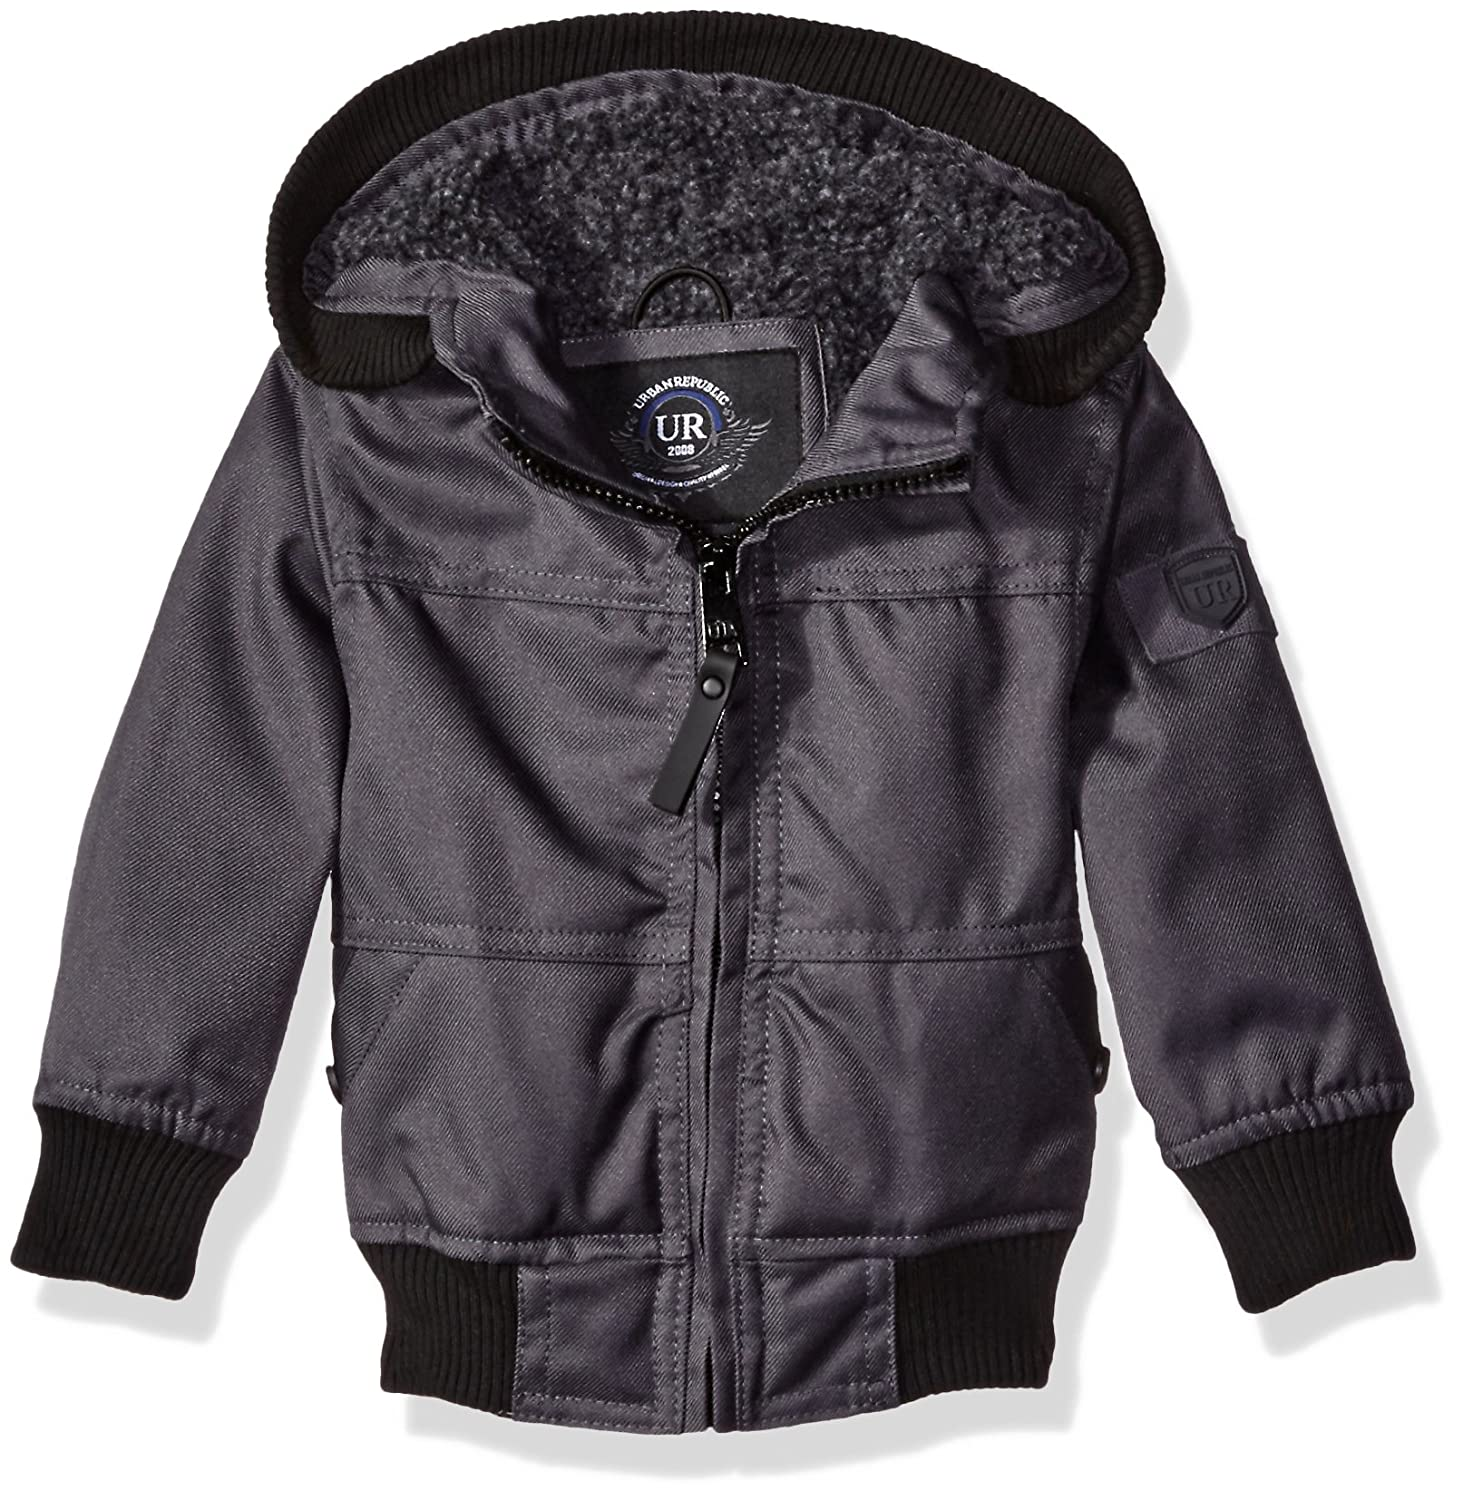 3ebc4631c Urban Republic Baby Boys' Infant Basllistic Bomber Jacket with Sherpa Lining,  Black, 18 Months: Amazon.in: Clothing & Accessories